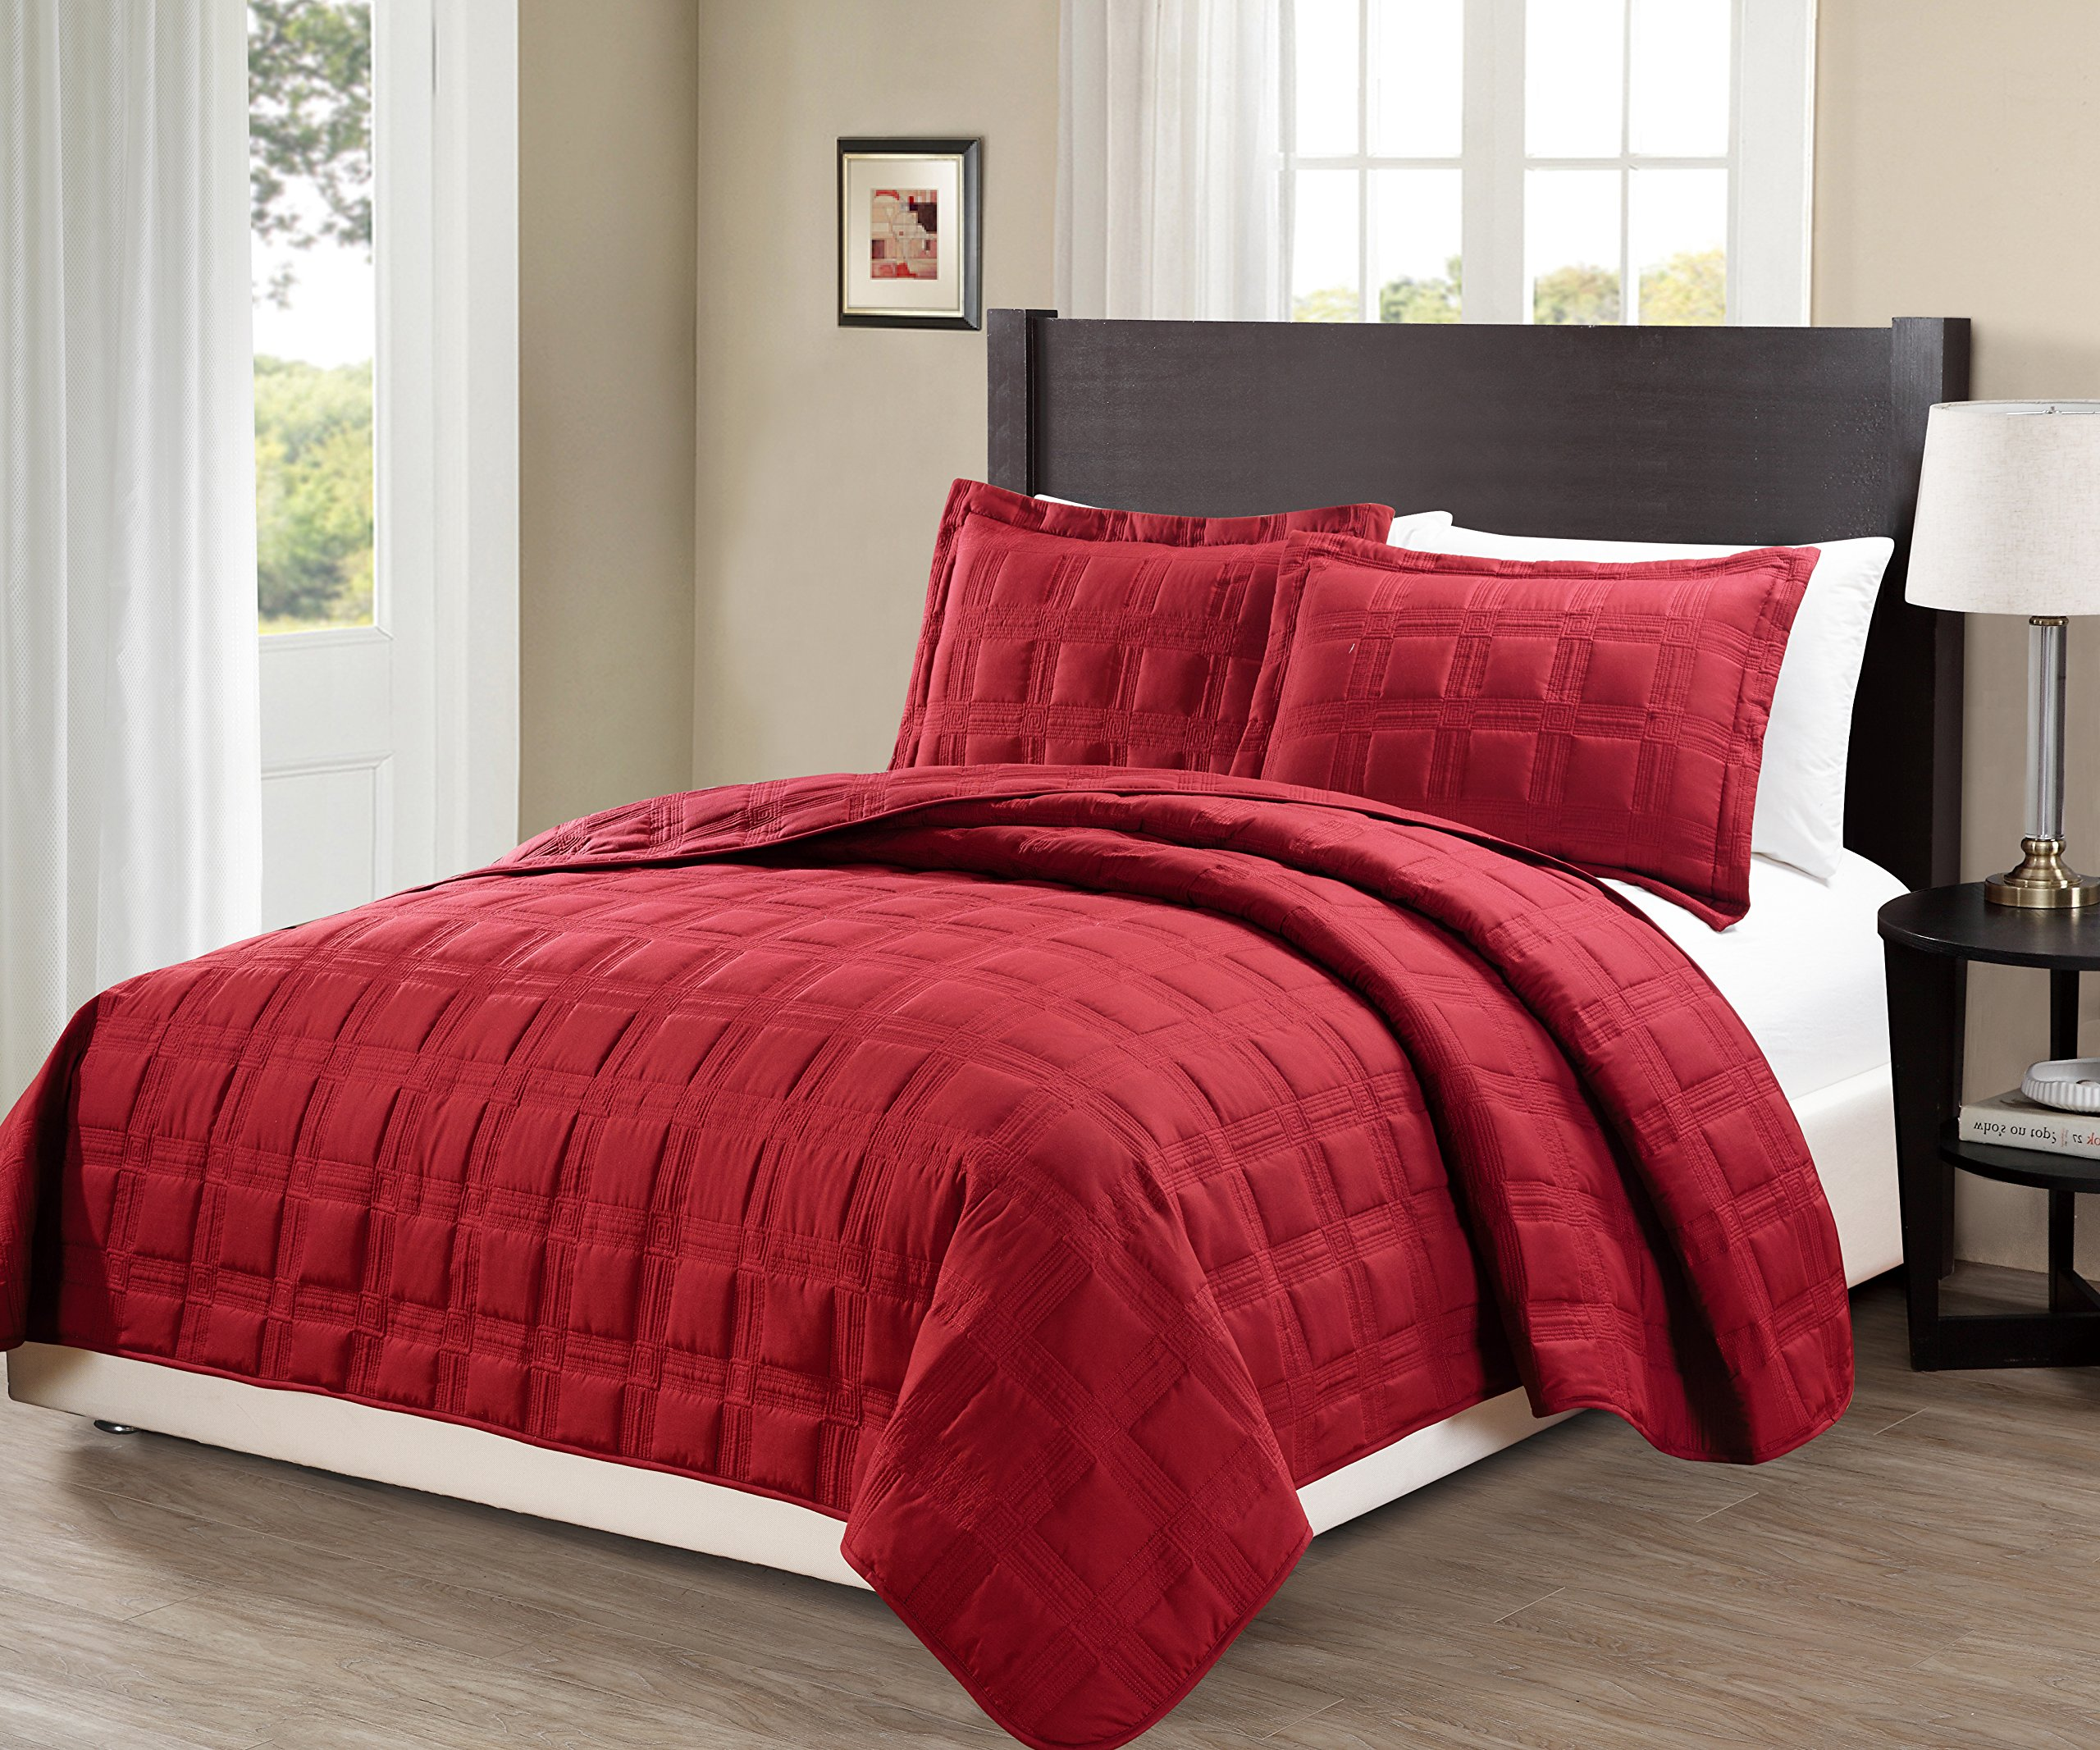 MK Home Mk Collection King/California king over size 118''x106'' 3 pc Target Bedspread Bed-cover Quilted Embroidery solid Red New